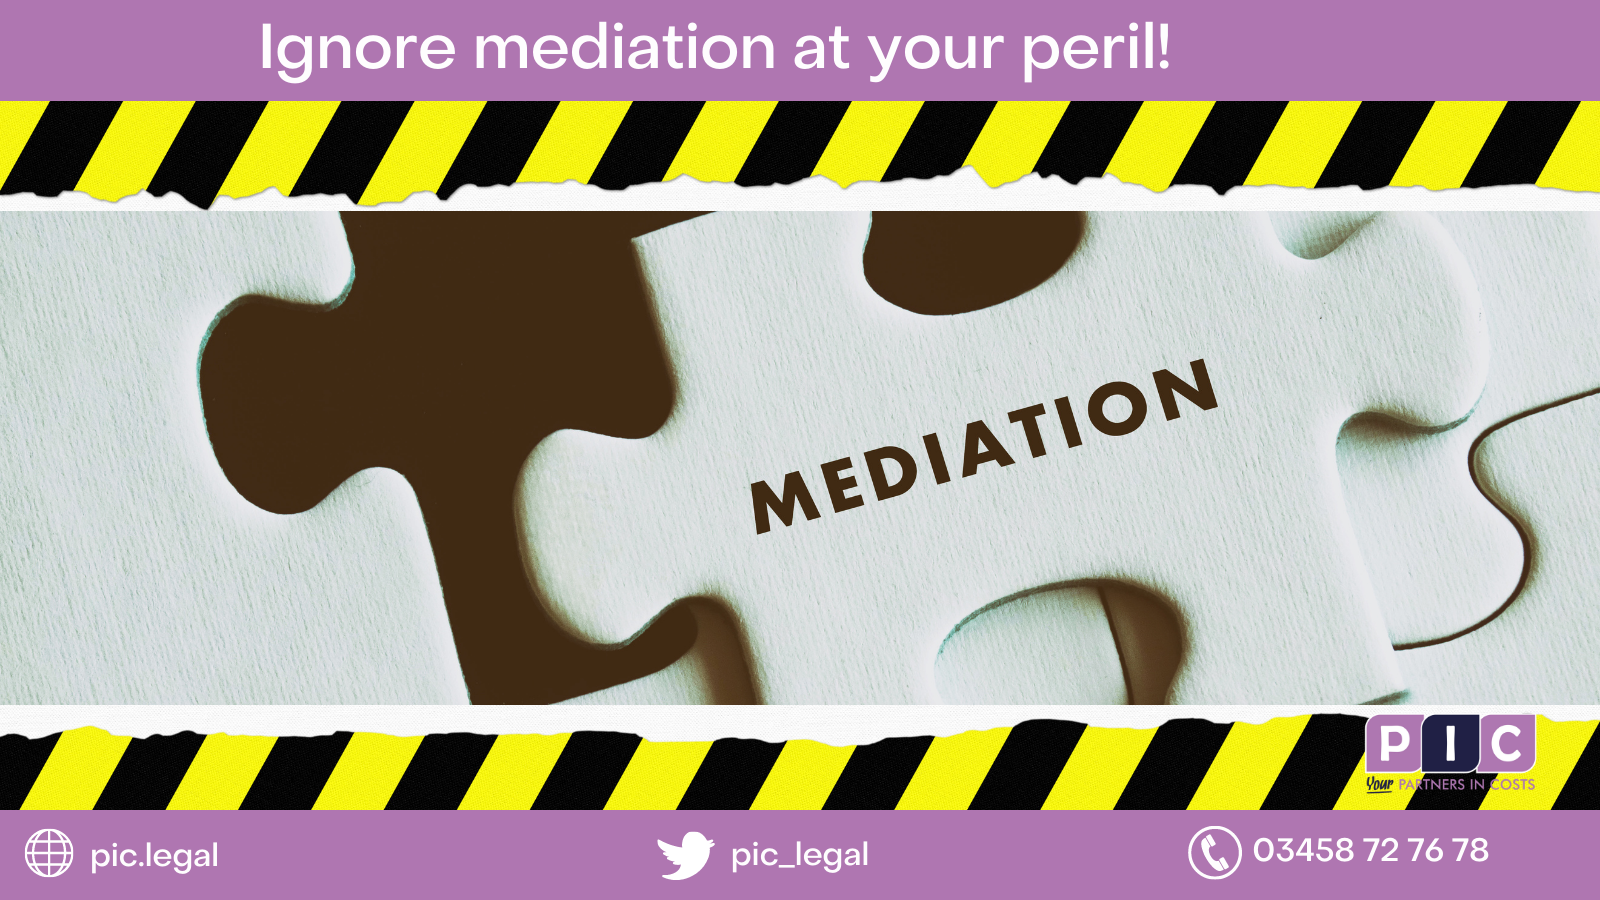 Ignore mediation at your peril!